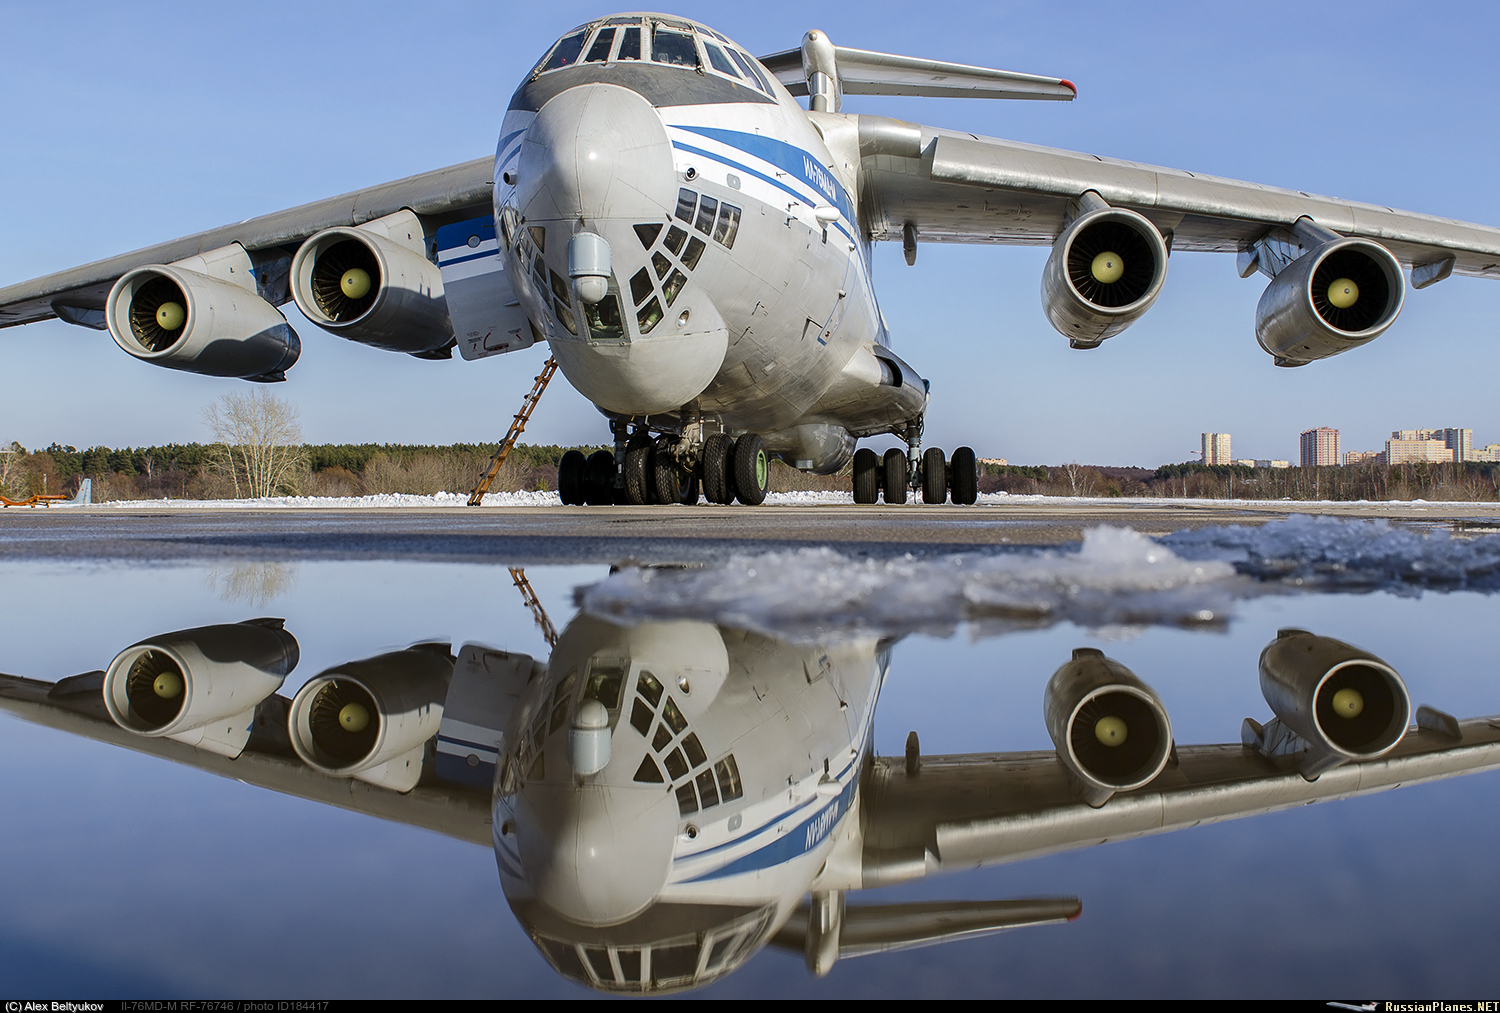 Il-76/476 Military Transports - Page 5 184417